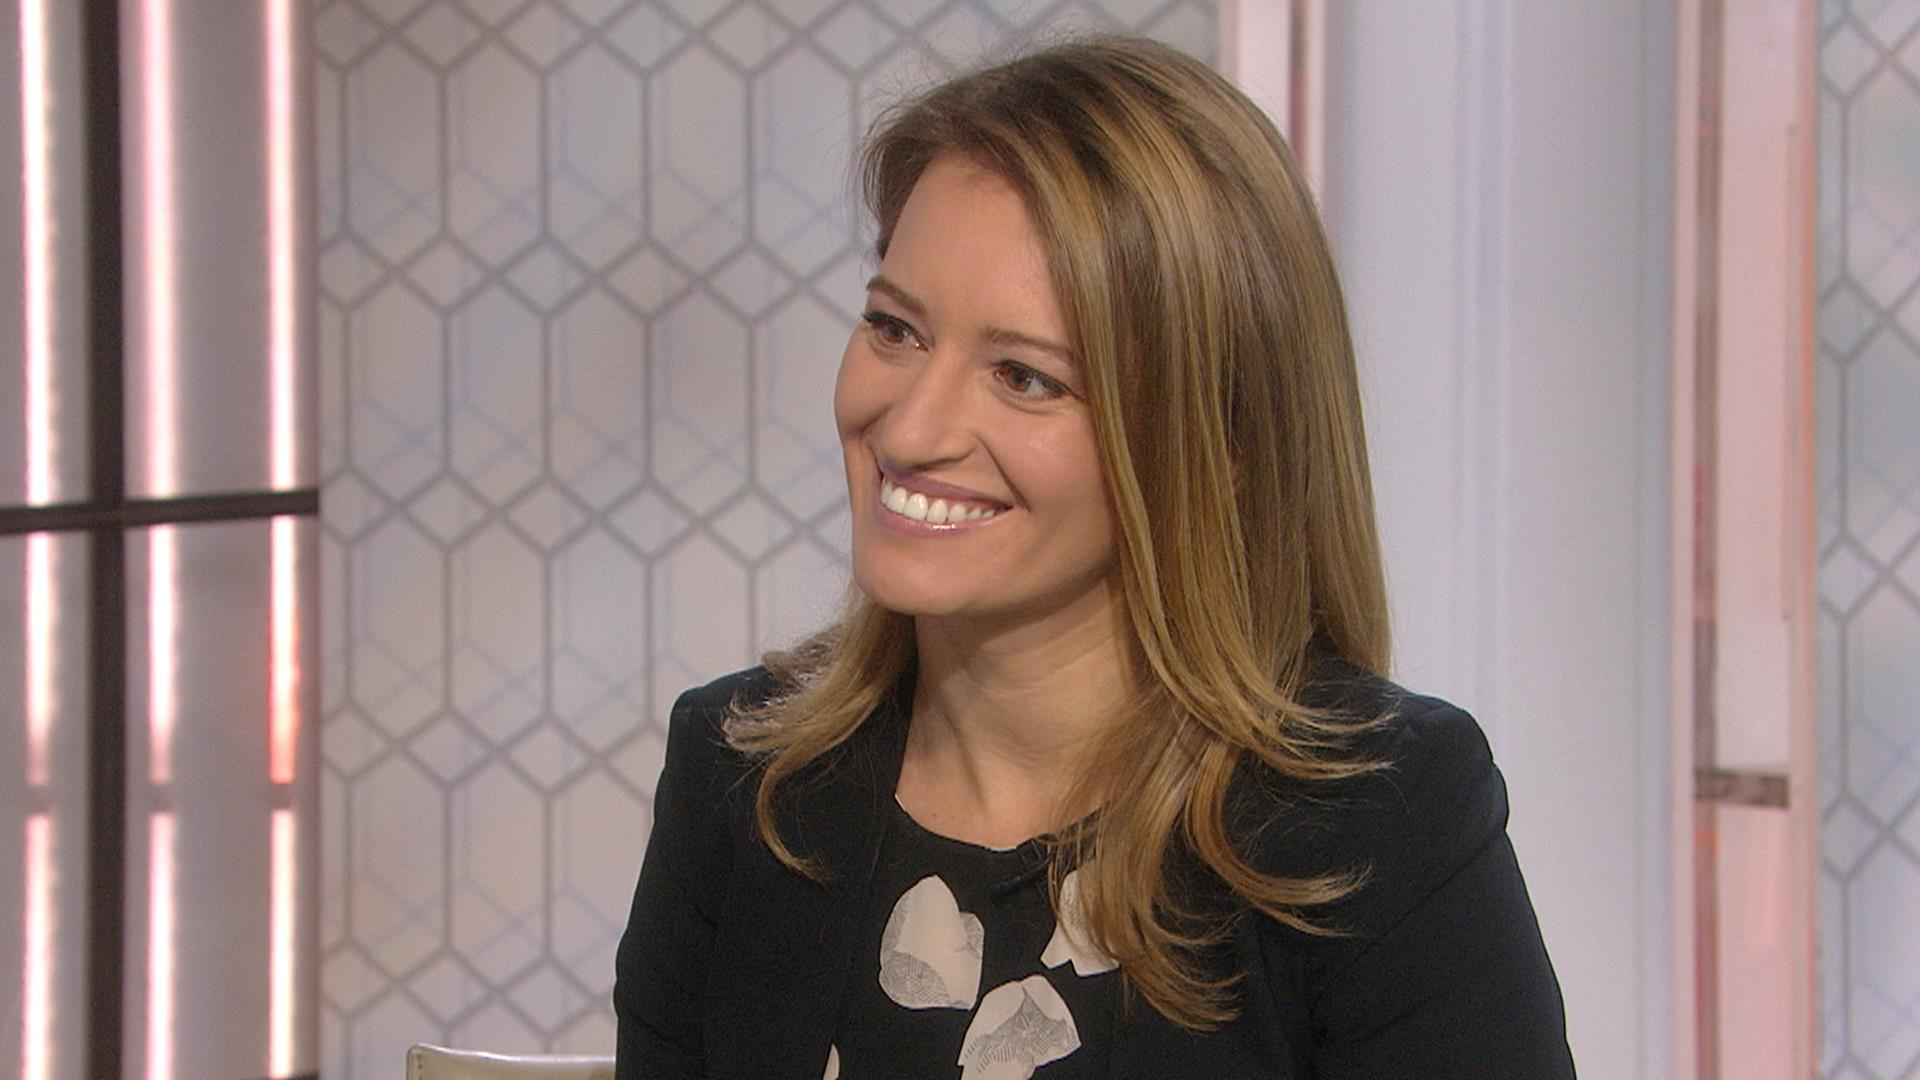 images of katy tur nude